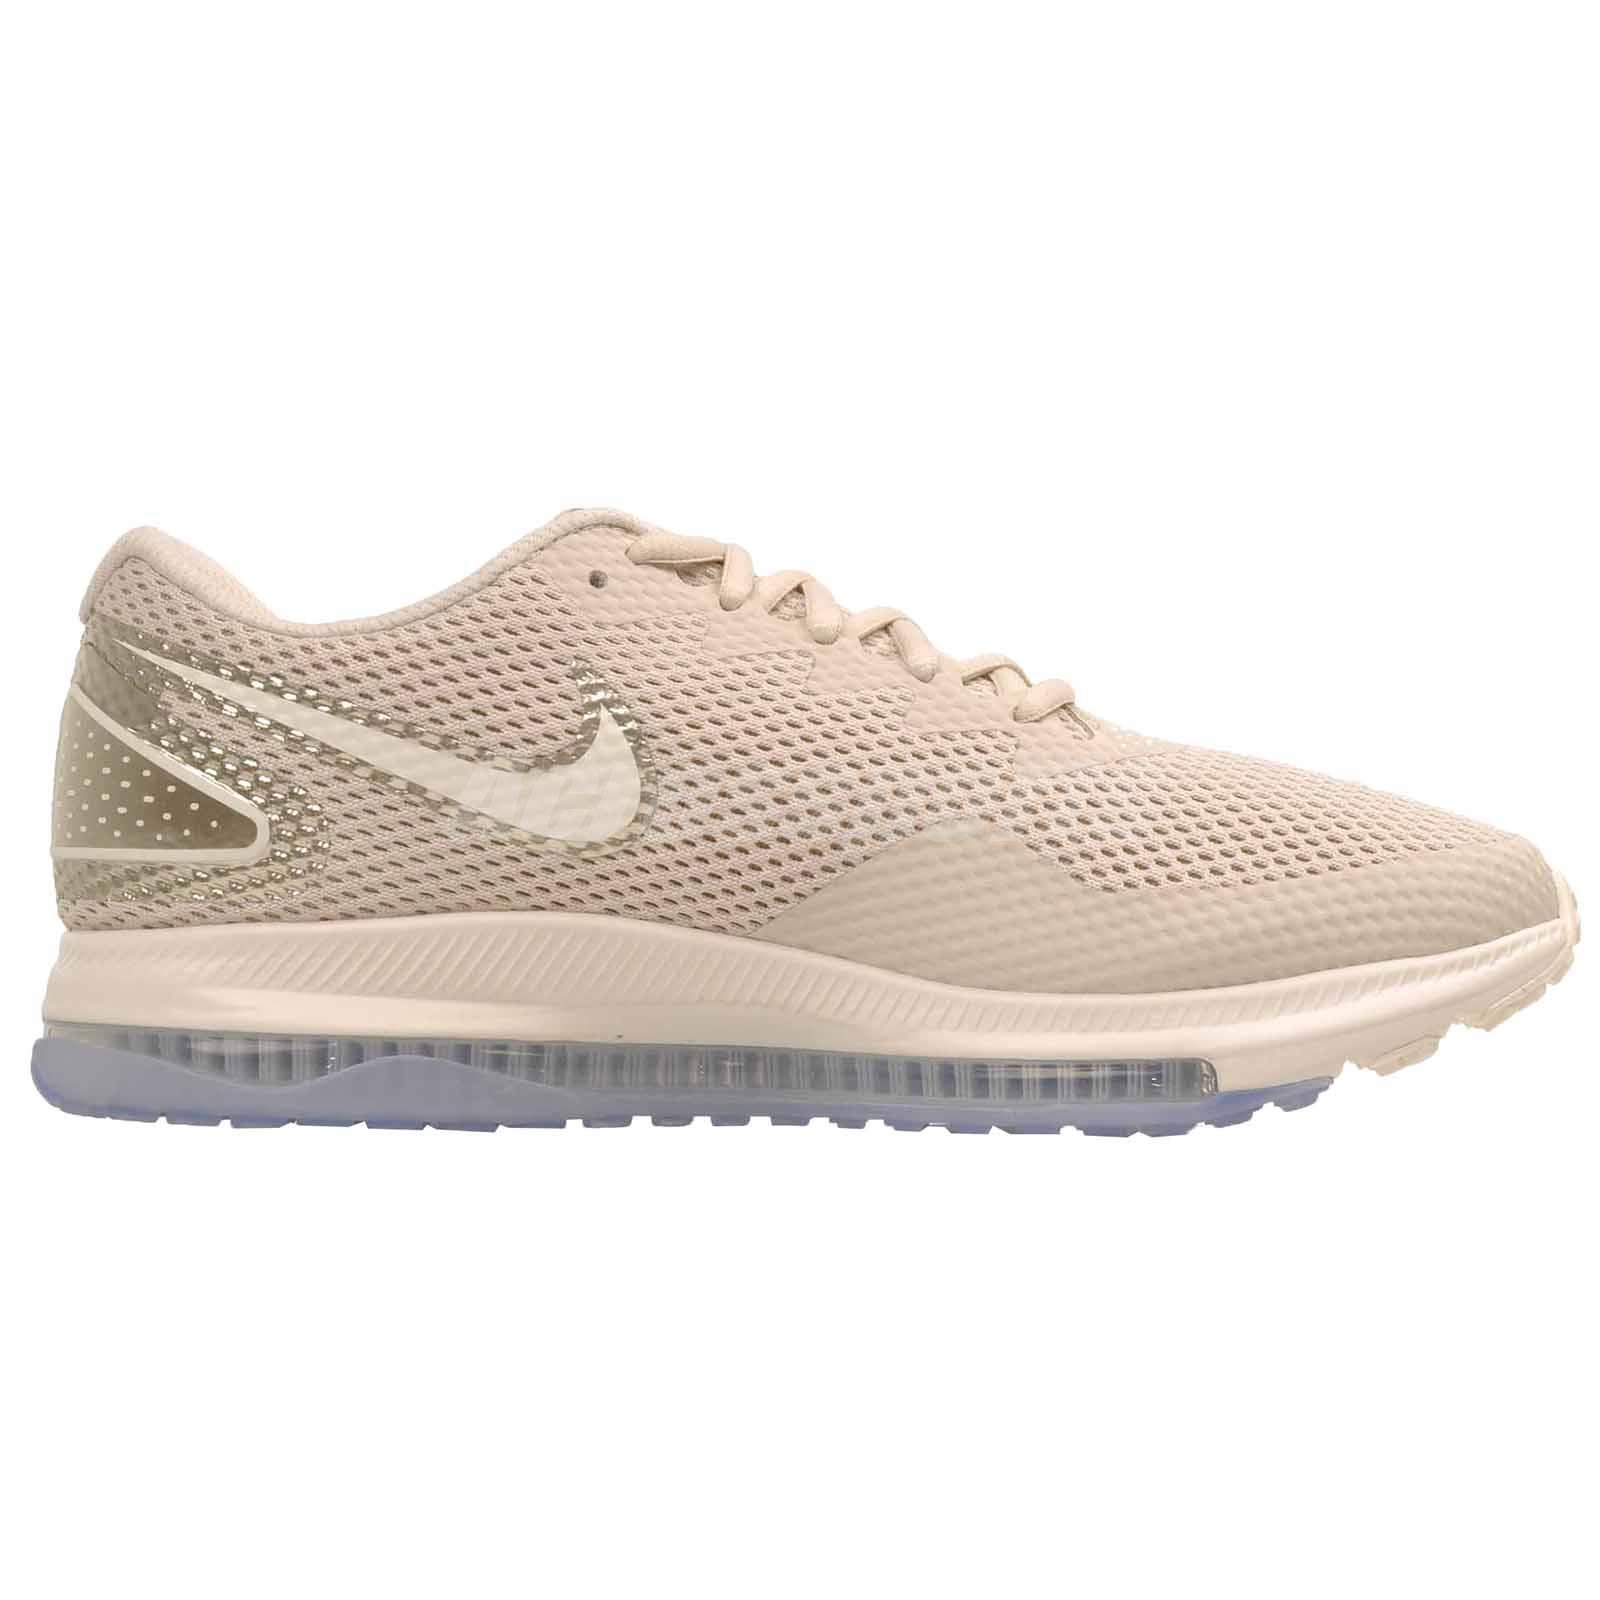 0f9d5b265930 Nike Wmns Zoom All Out Low 2 Running Womens Shoes Light Cream AJ0036 ...